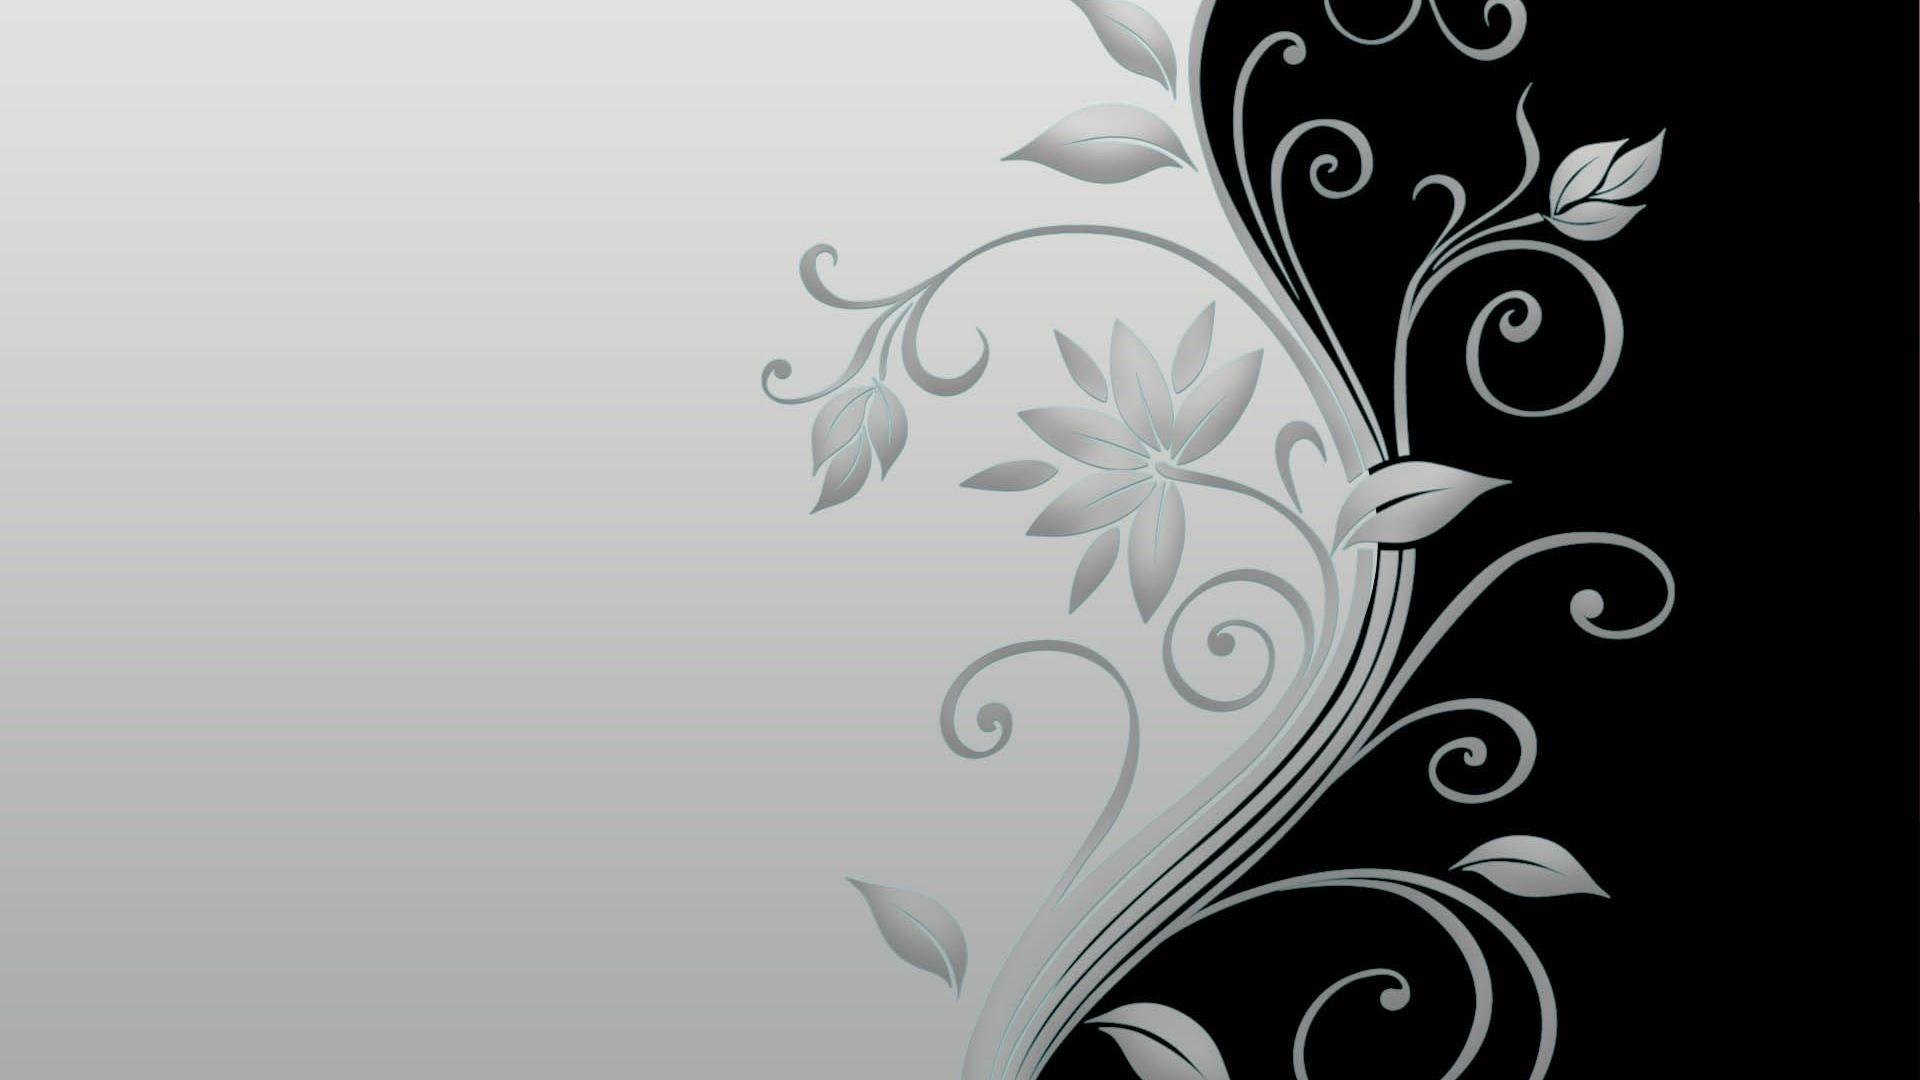 Flower Black and White HD Wallpaper Vector Flower Black and White 1920x1080